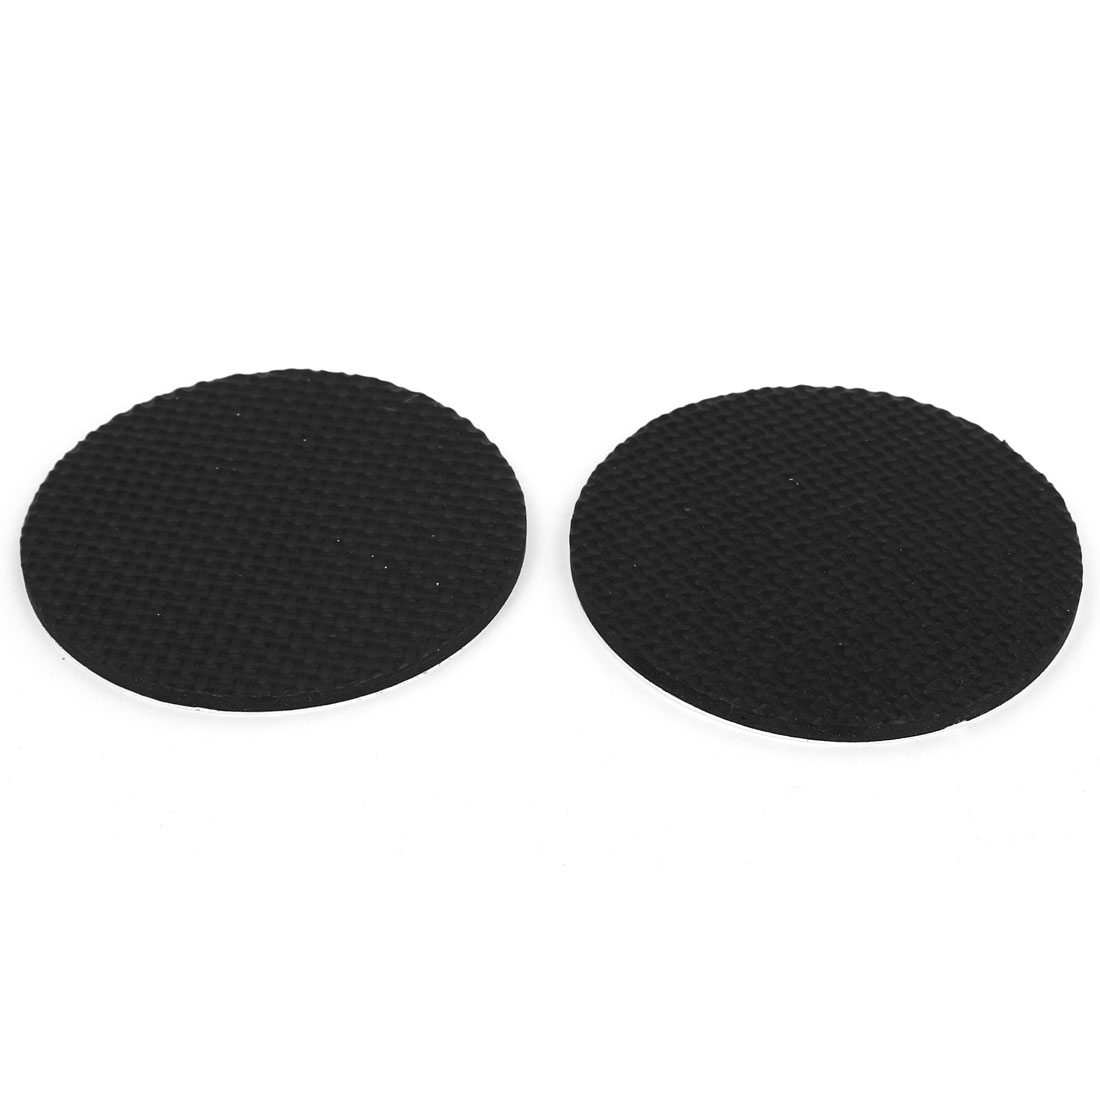 2pcs 85mm Black Self Adhesive Round Furniture Floor Scratch Protector EVA Pads